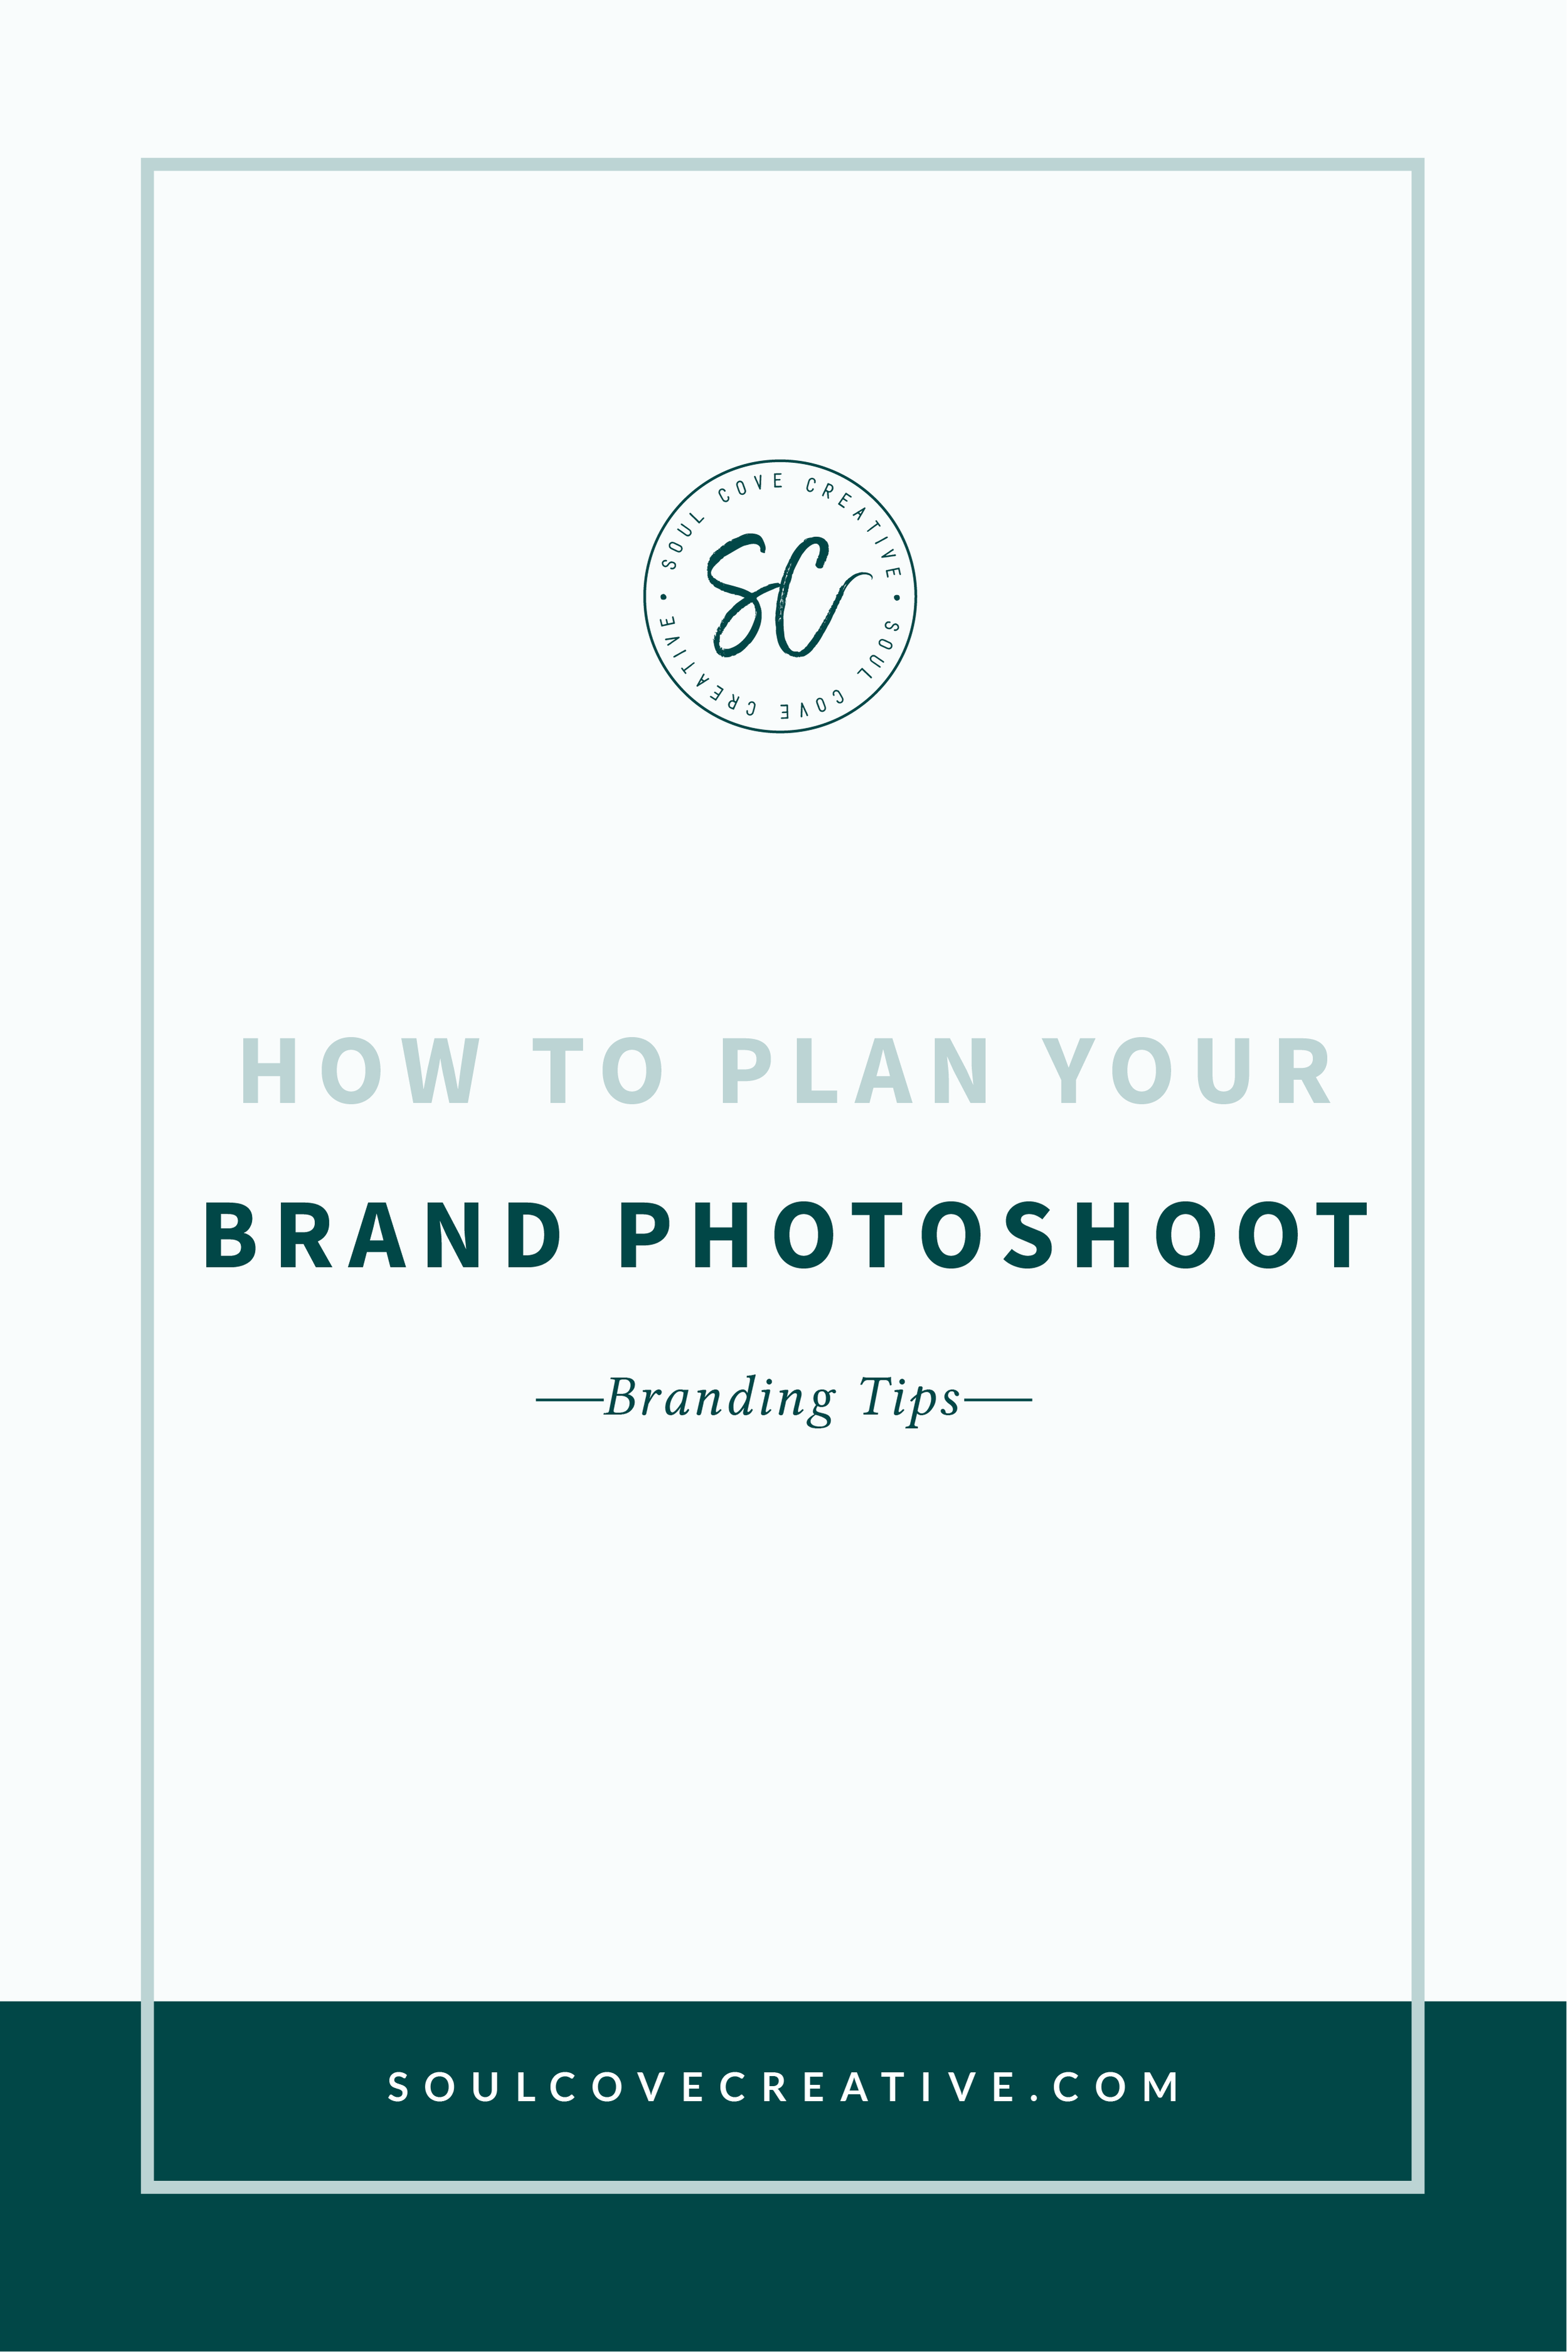 How to Plan your Brand Photoshoot